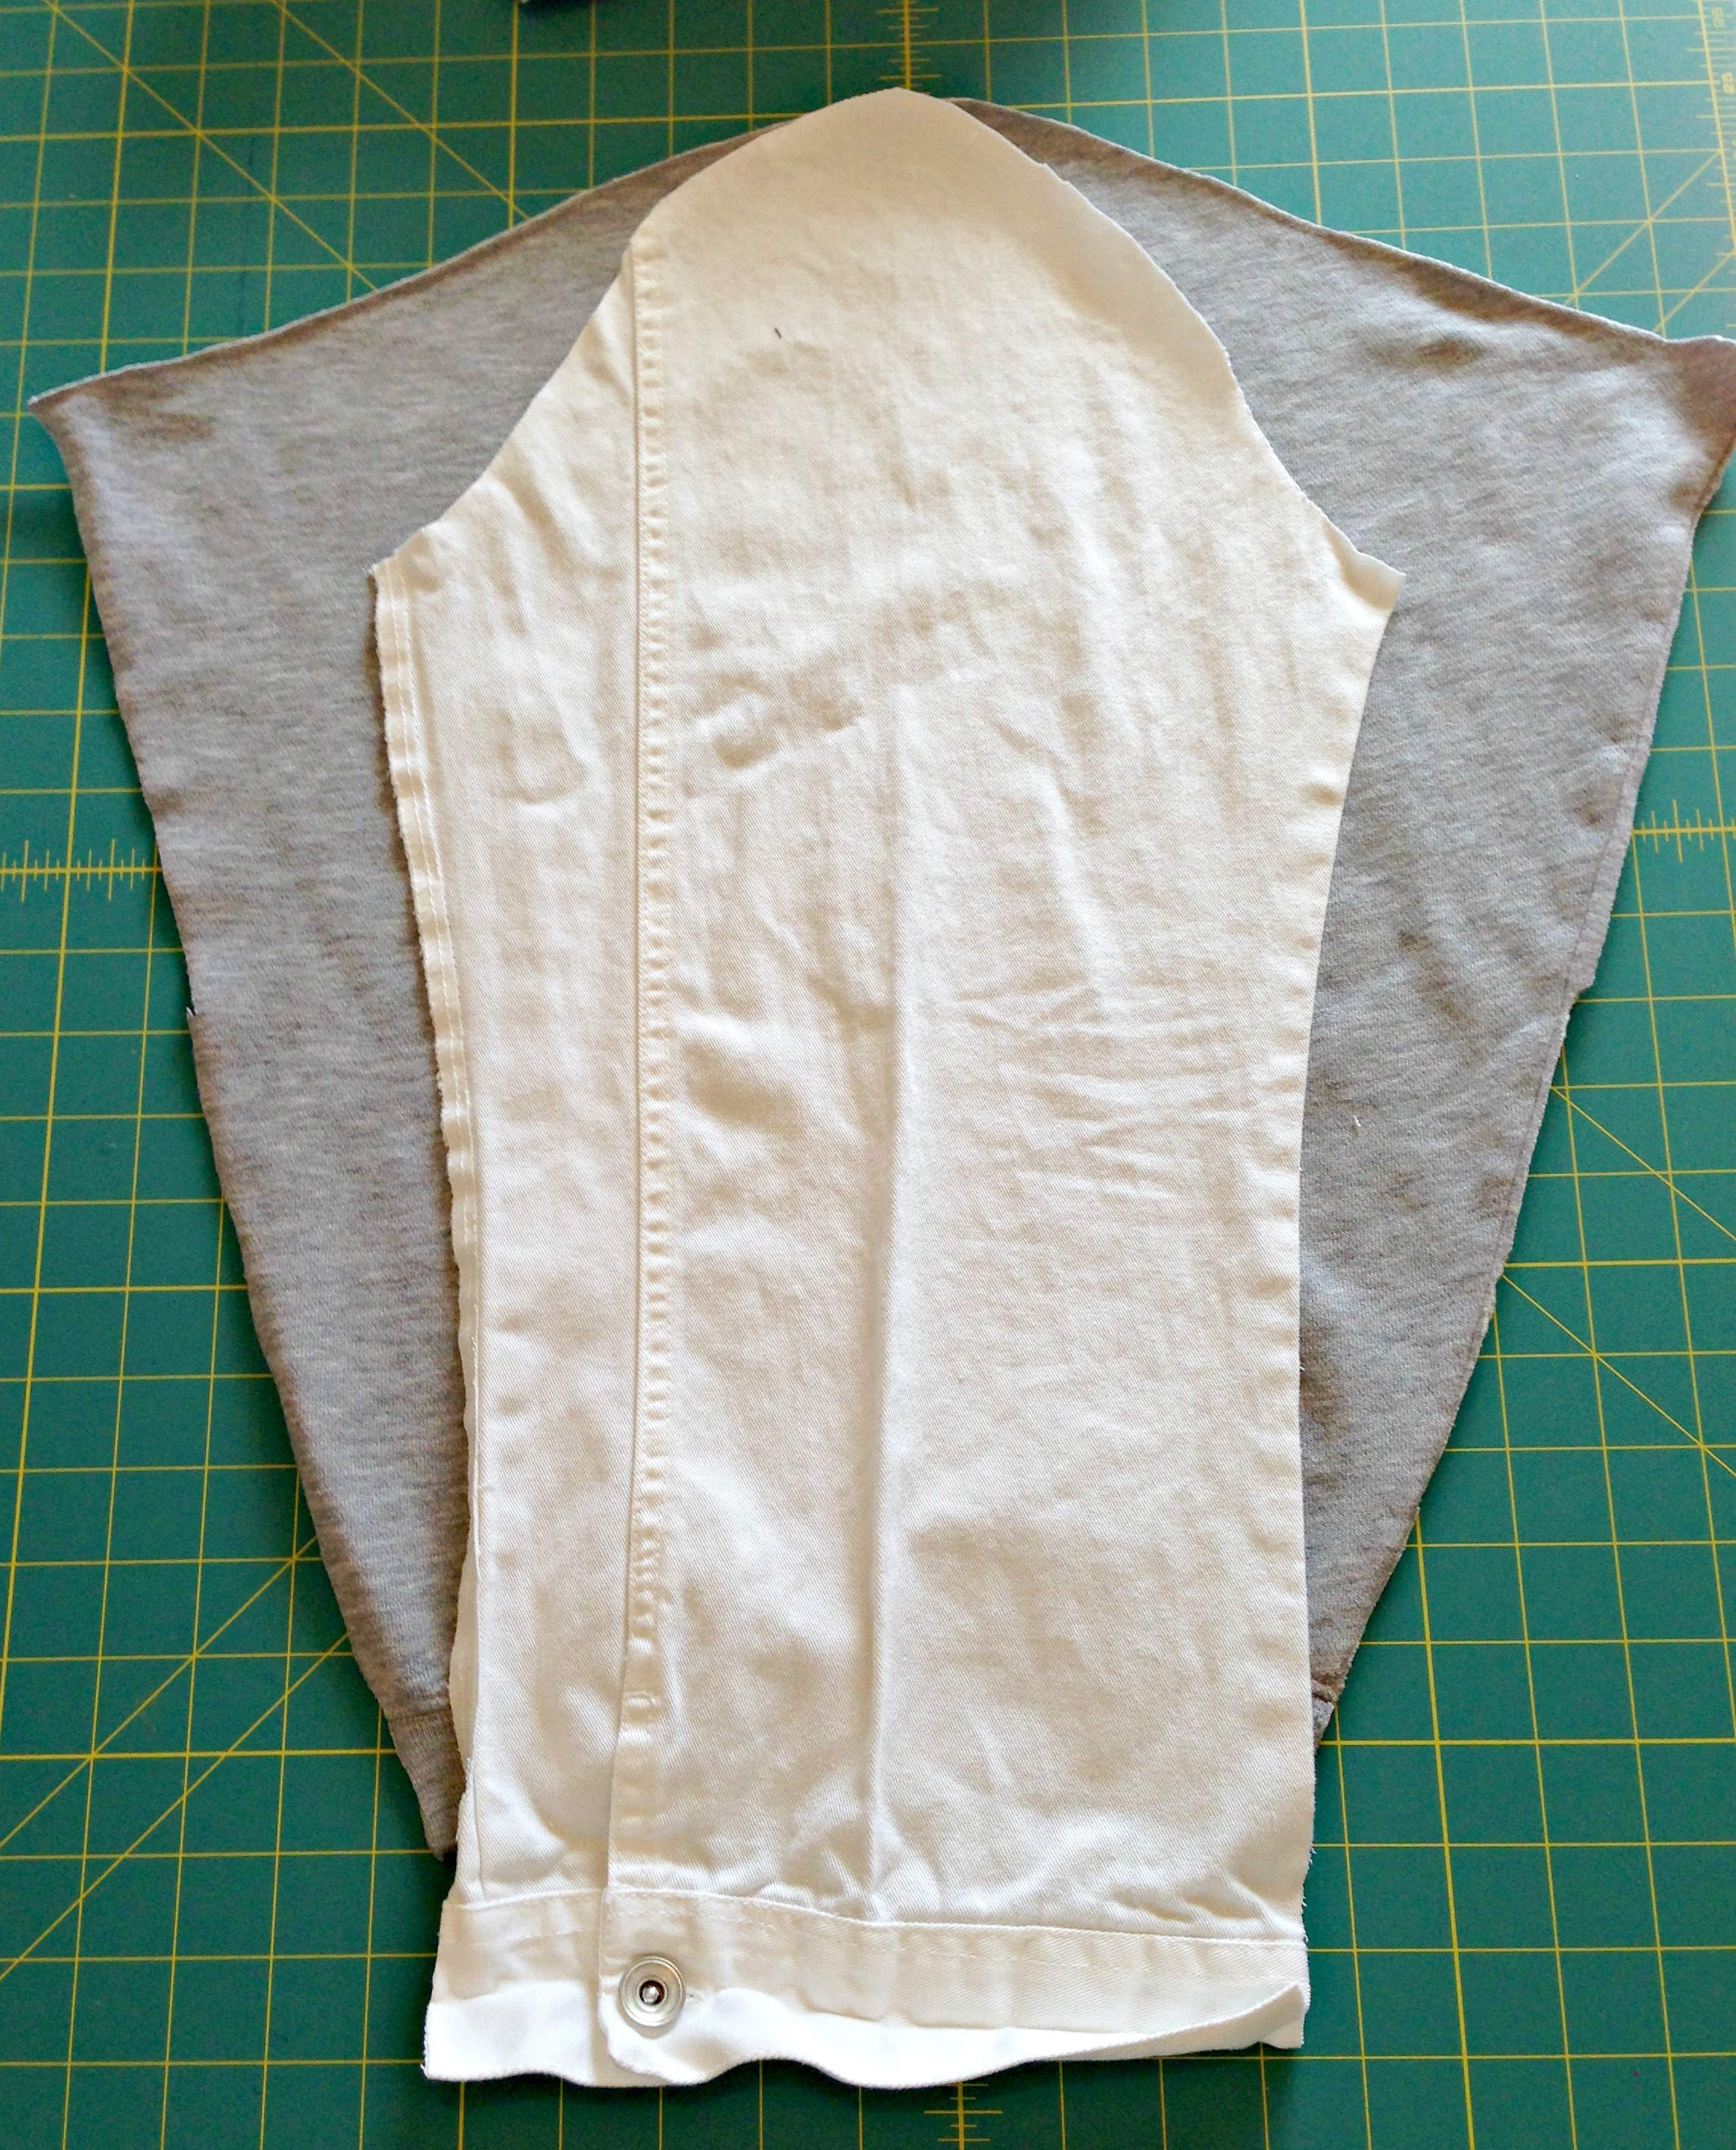 Refashioned Jean Jacket with Sweatshirt Sleeves and Hoodie - Cut out sweatshirt sleeves using the jean jacket sleeve as a pattern